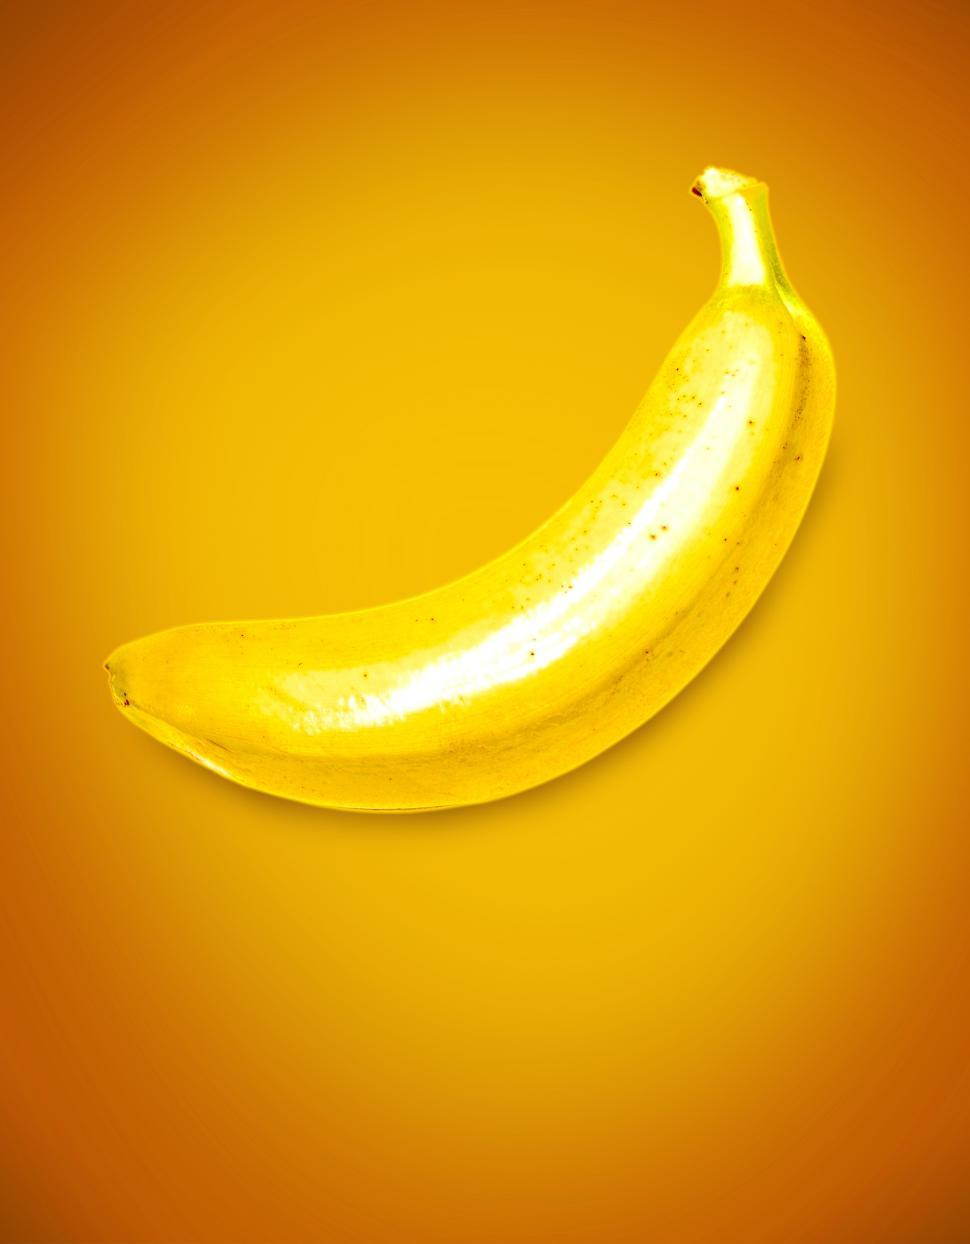 Download Free Stock HD Photo of Yellow Banana on Yellow Background Online